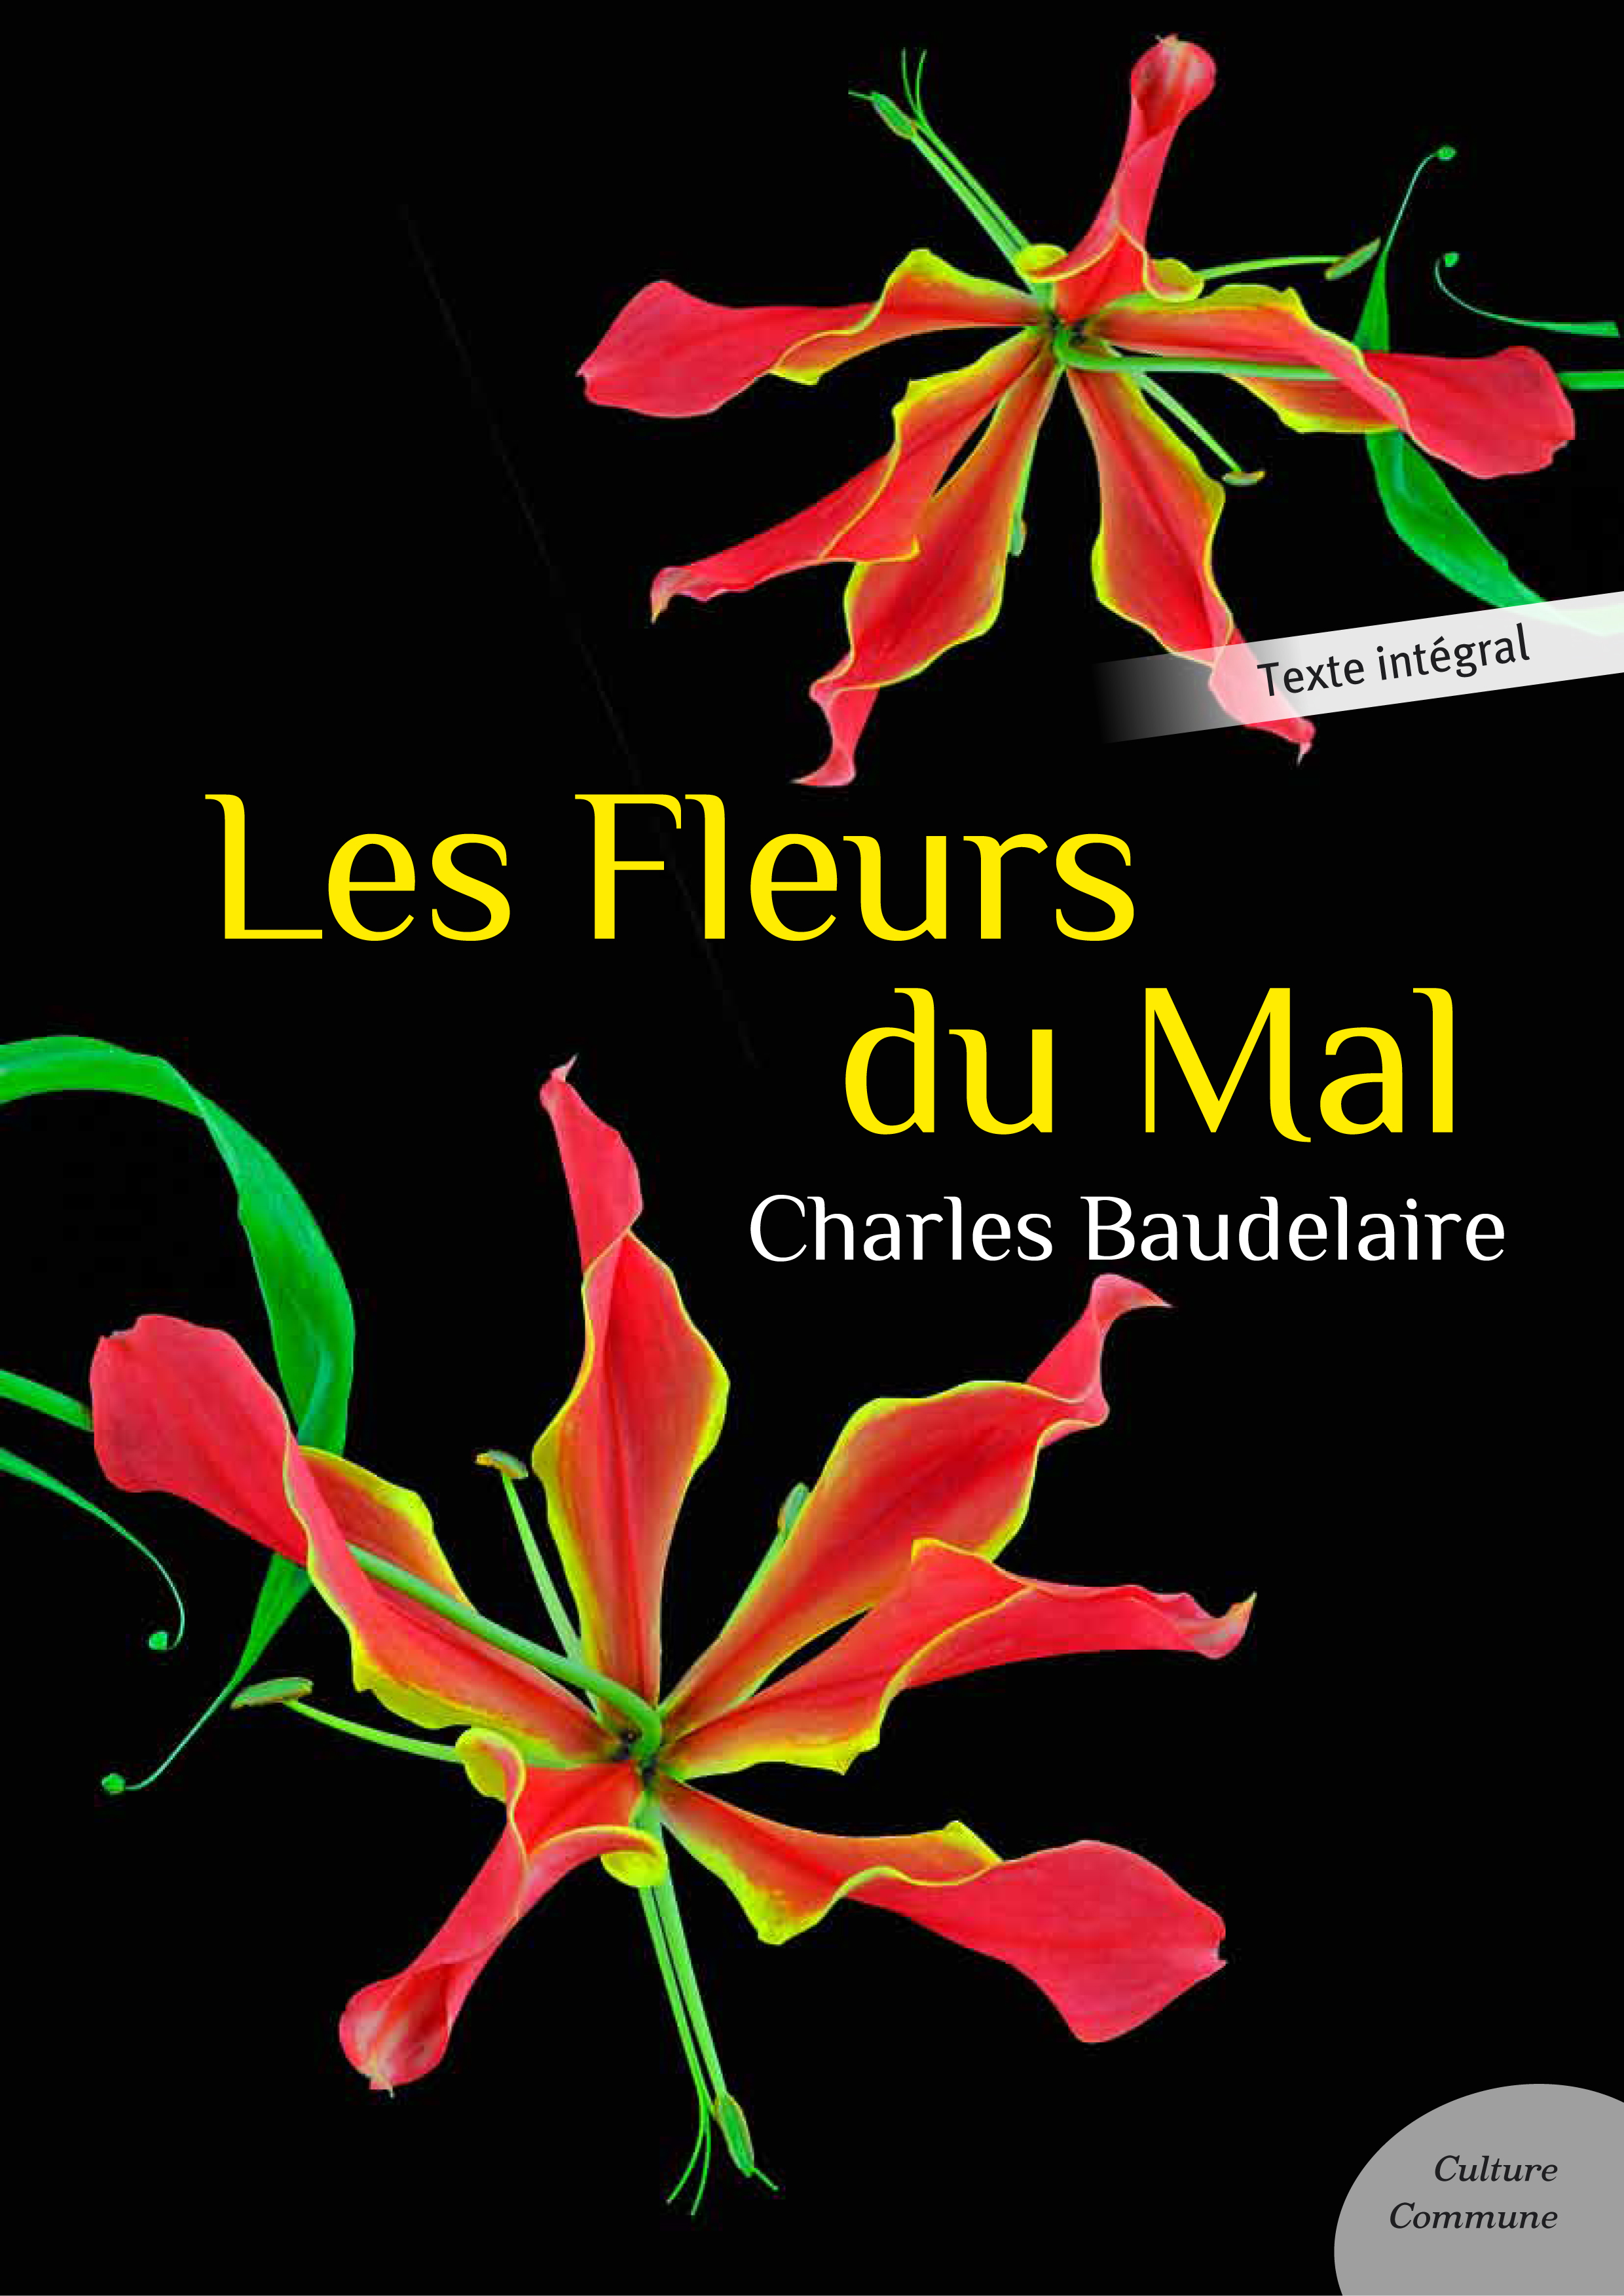 an analysis of les fleurs du mal by charles baudelaire Three poems from les fleurs du mal ~ charles baudelaire ~ four photogravures by henri cartier-bresson.